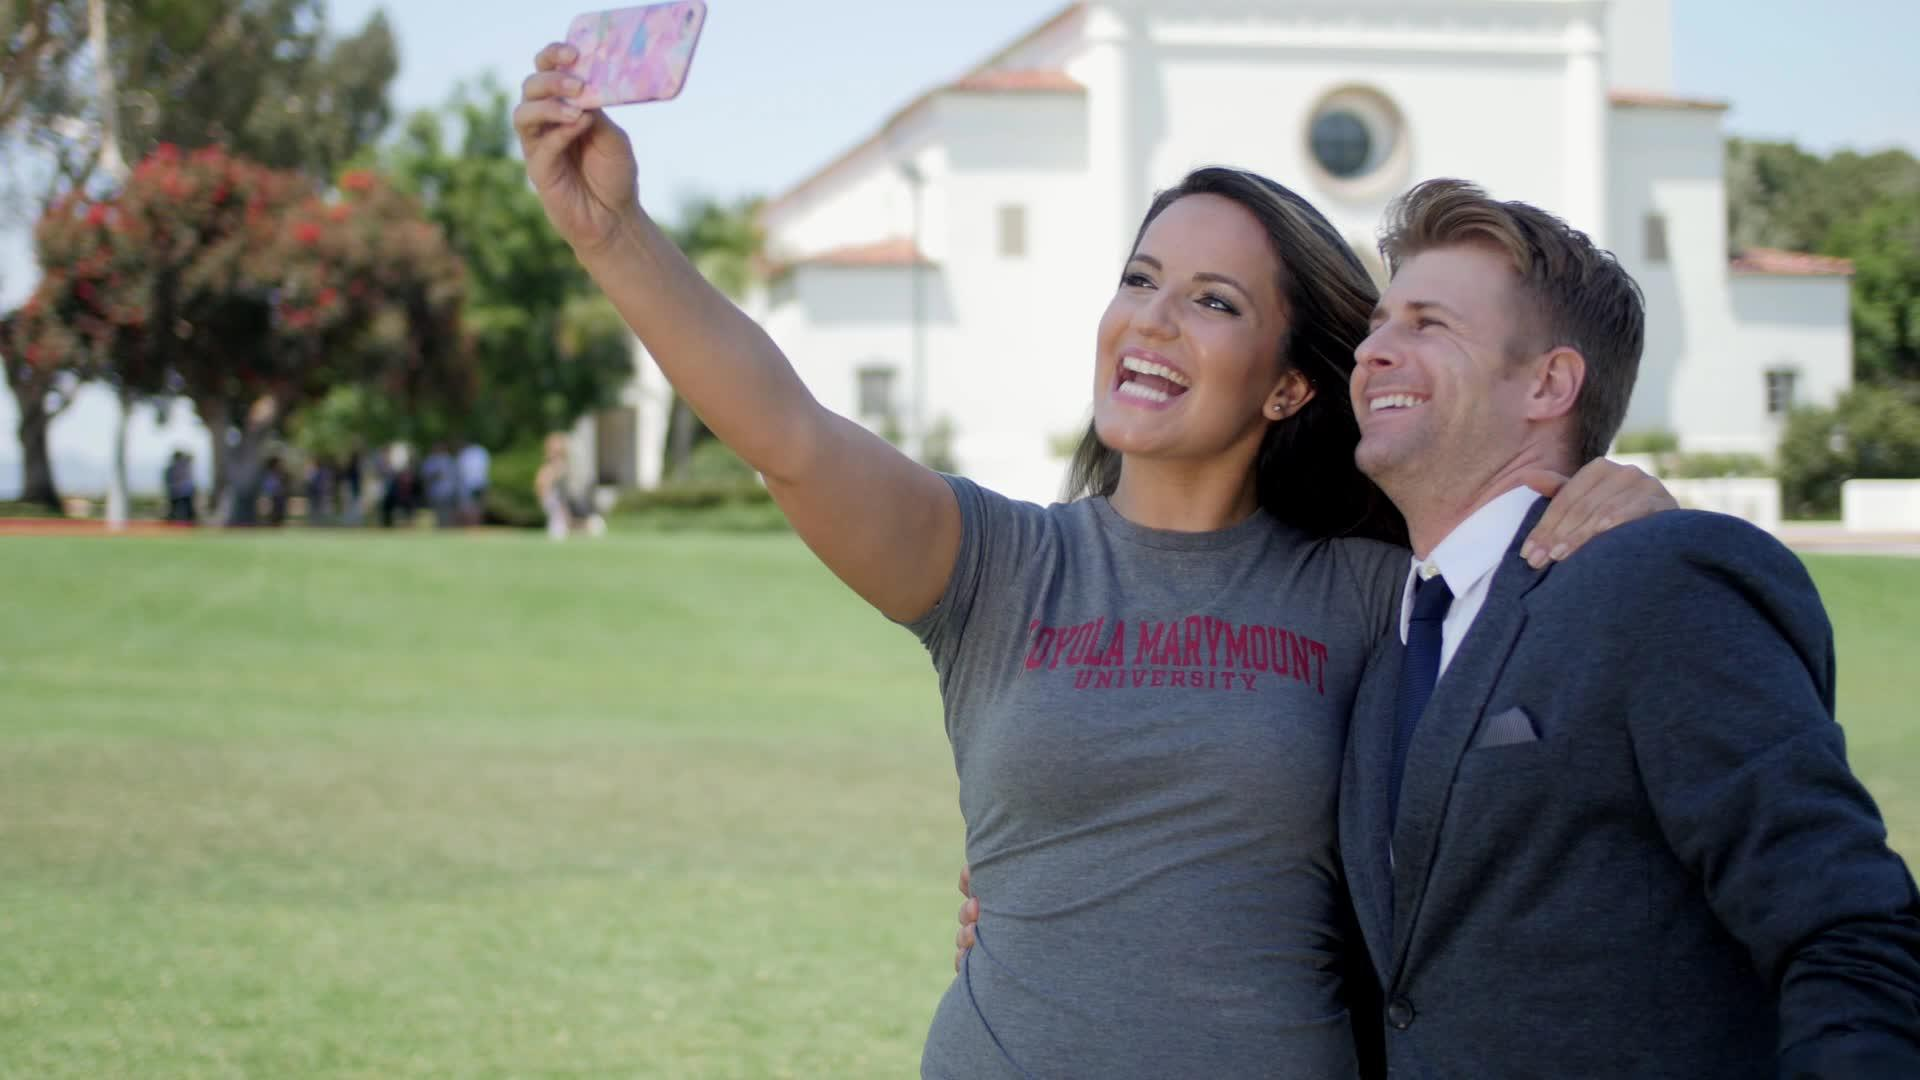 selfie - Inauguration Global Selfie Project: Welcome, President Snyder!